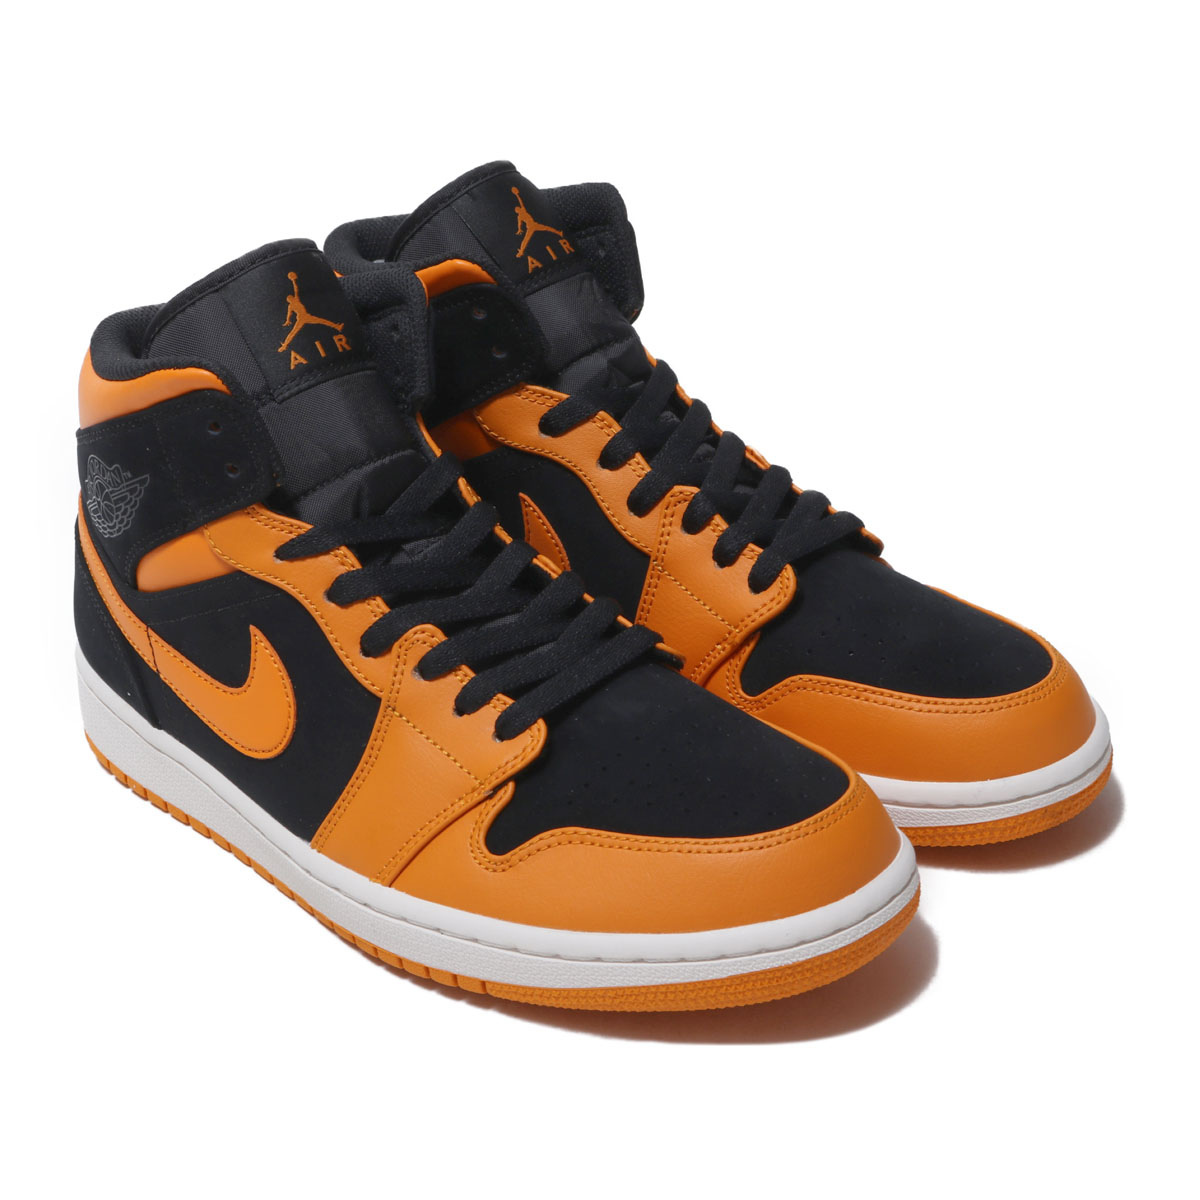 efb5f66dbe8 The Air Jordan 1 mid images original AJ1. The design which reminds